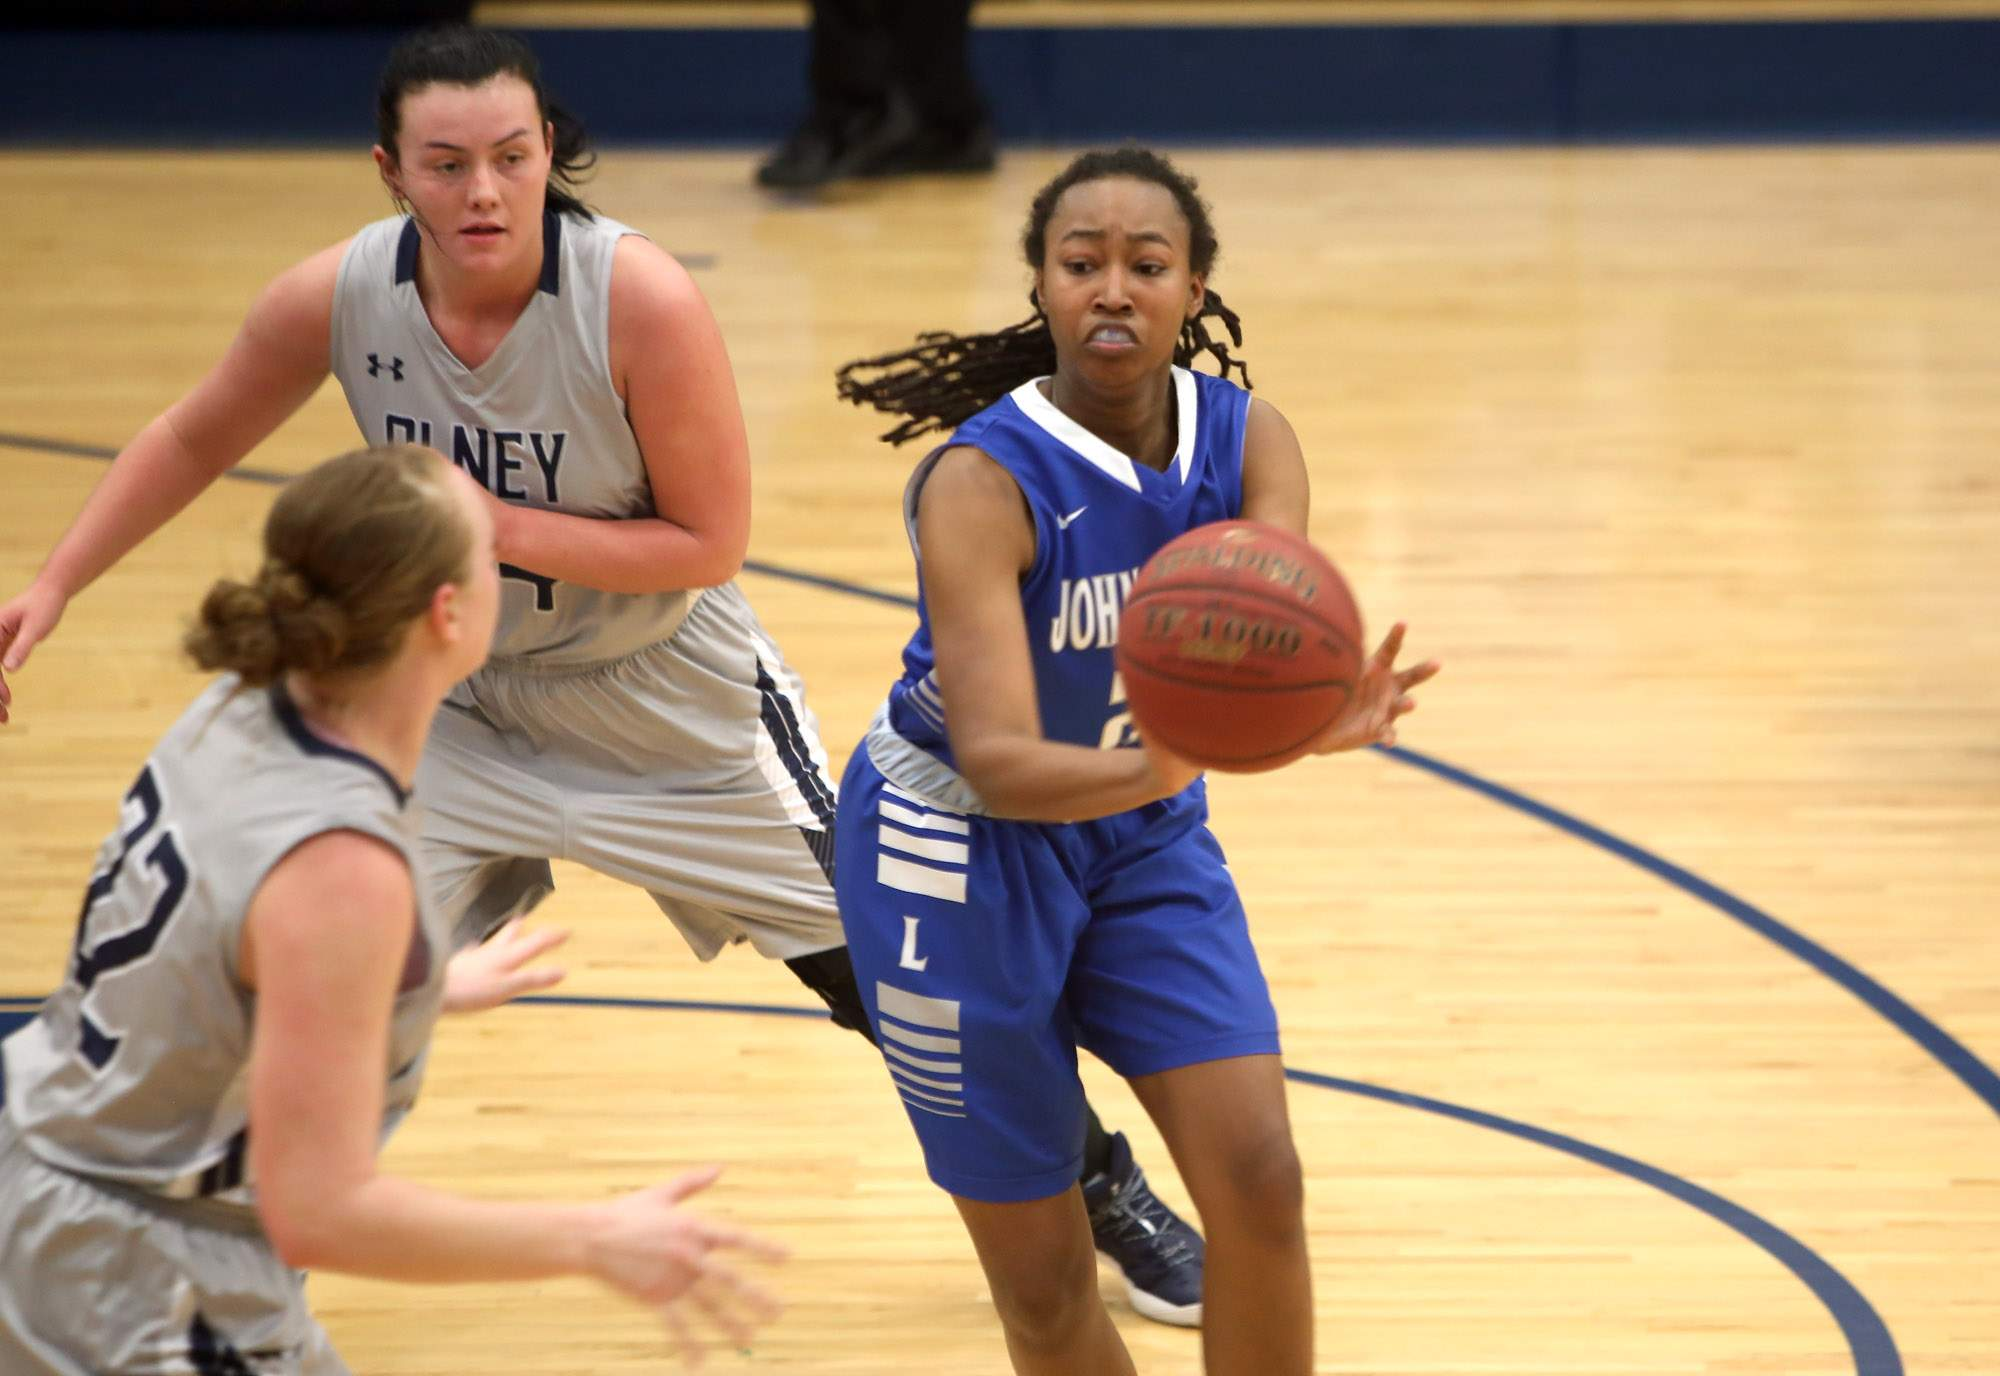 Miriah Donelson passes the ball.